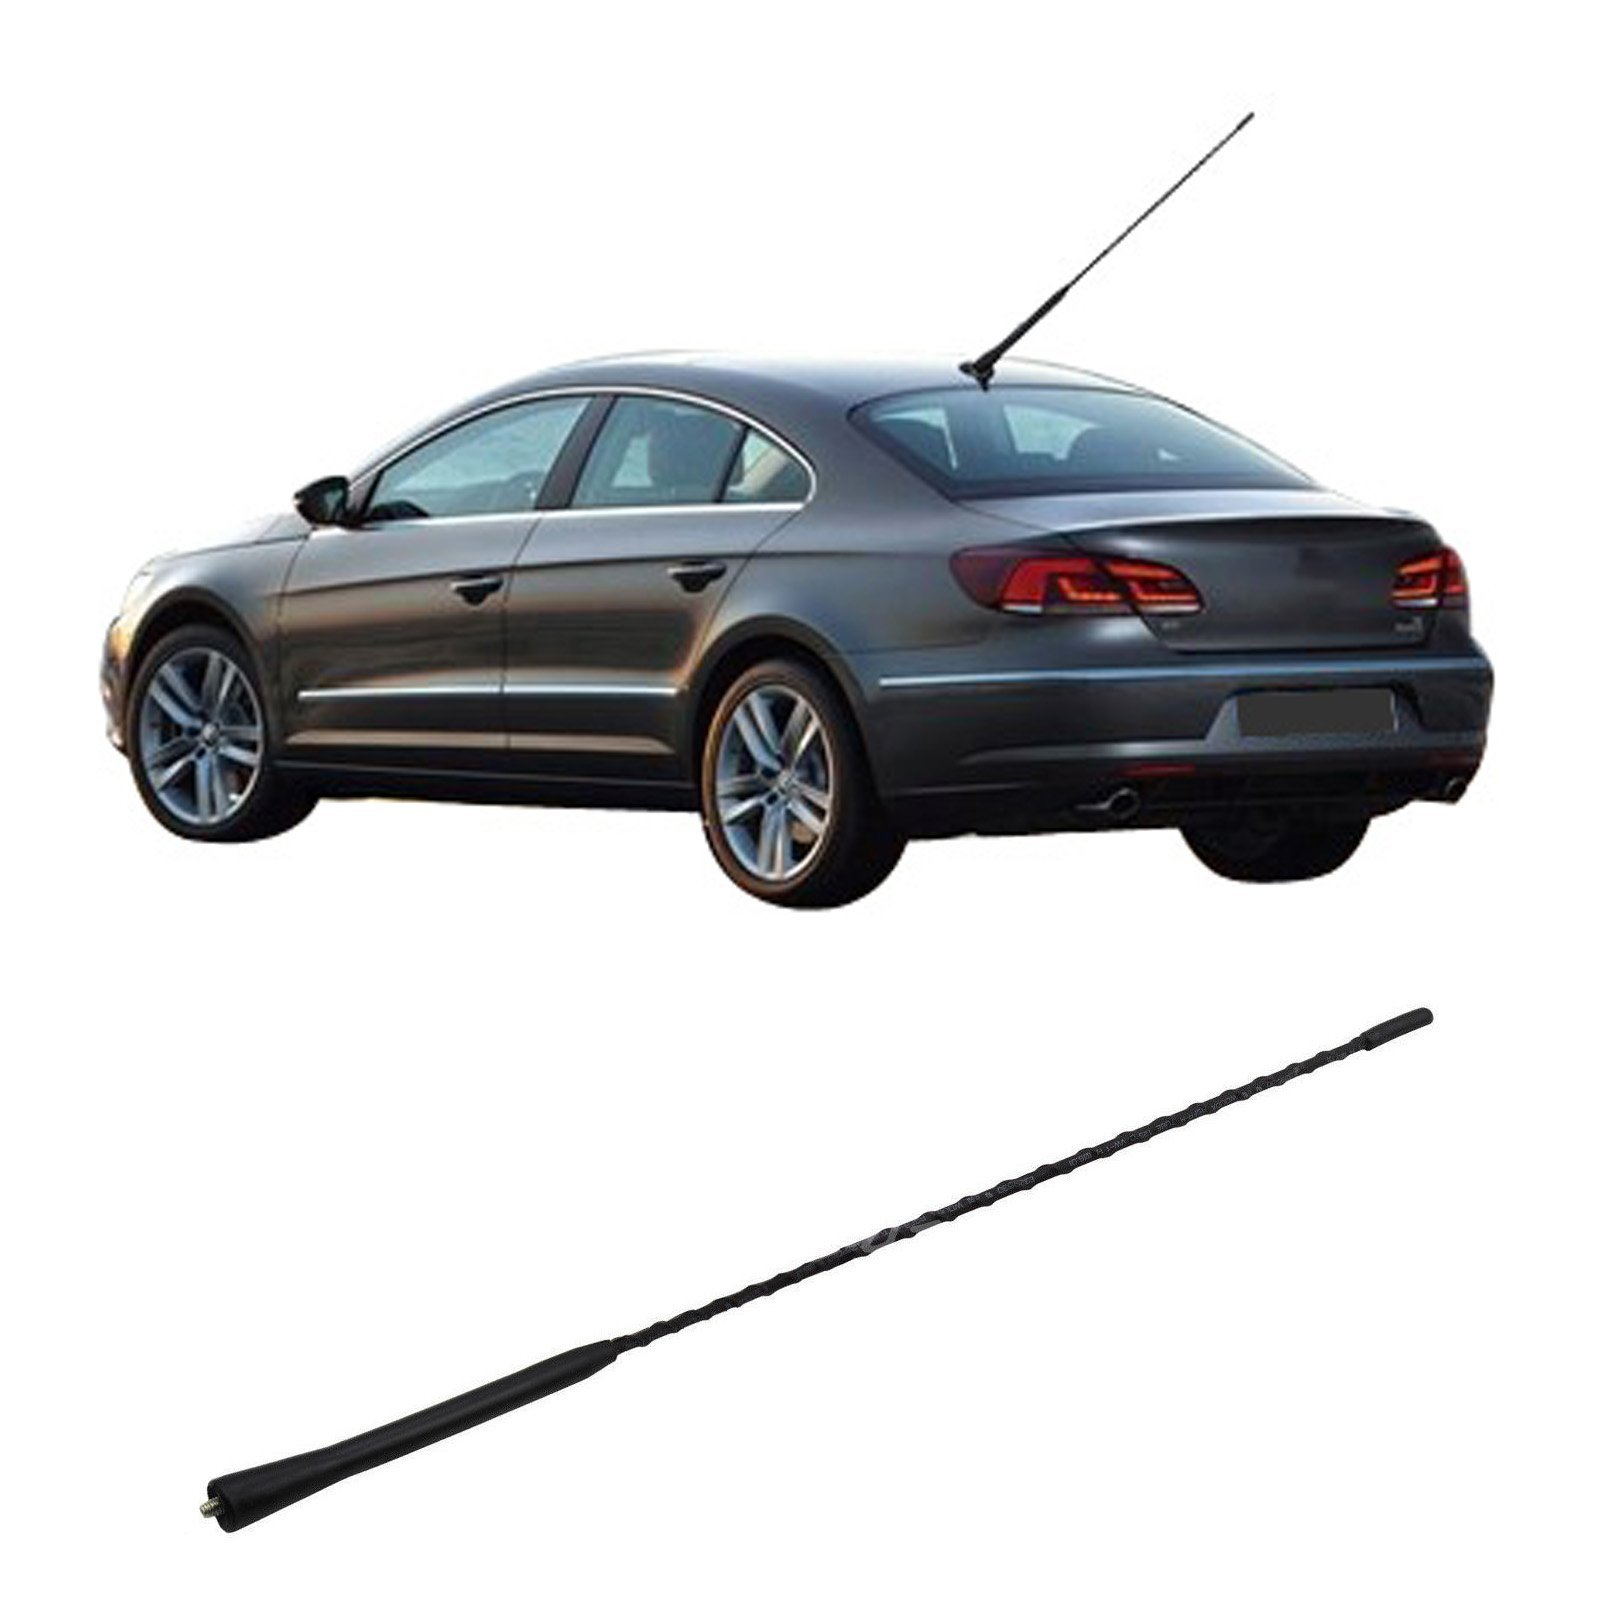 hight resolution of 16 antenna aerial radio replacement roof mast whip for vw jetta golf gti passat